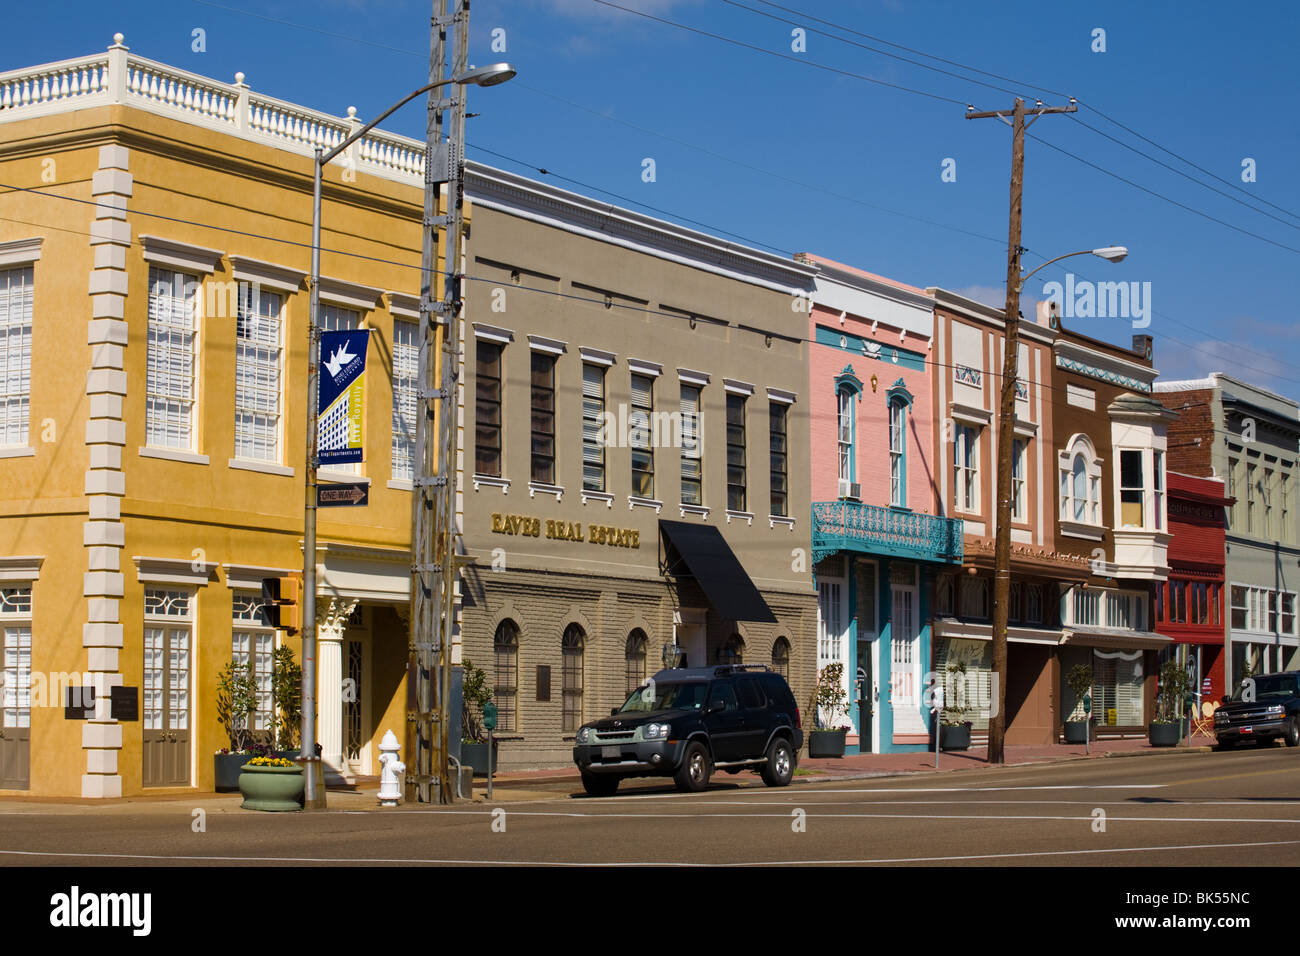 Colorful businesses along State Street, Jackson, Mississippi - Stock Image